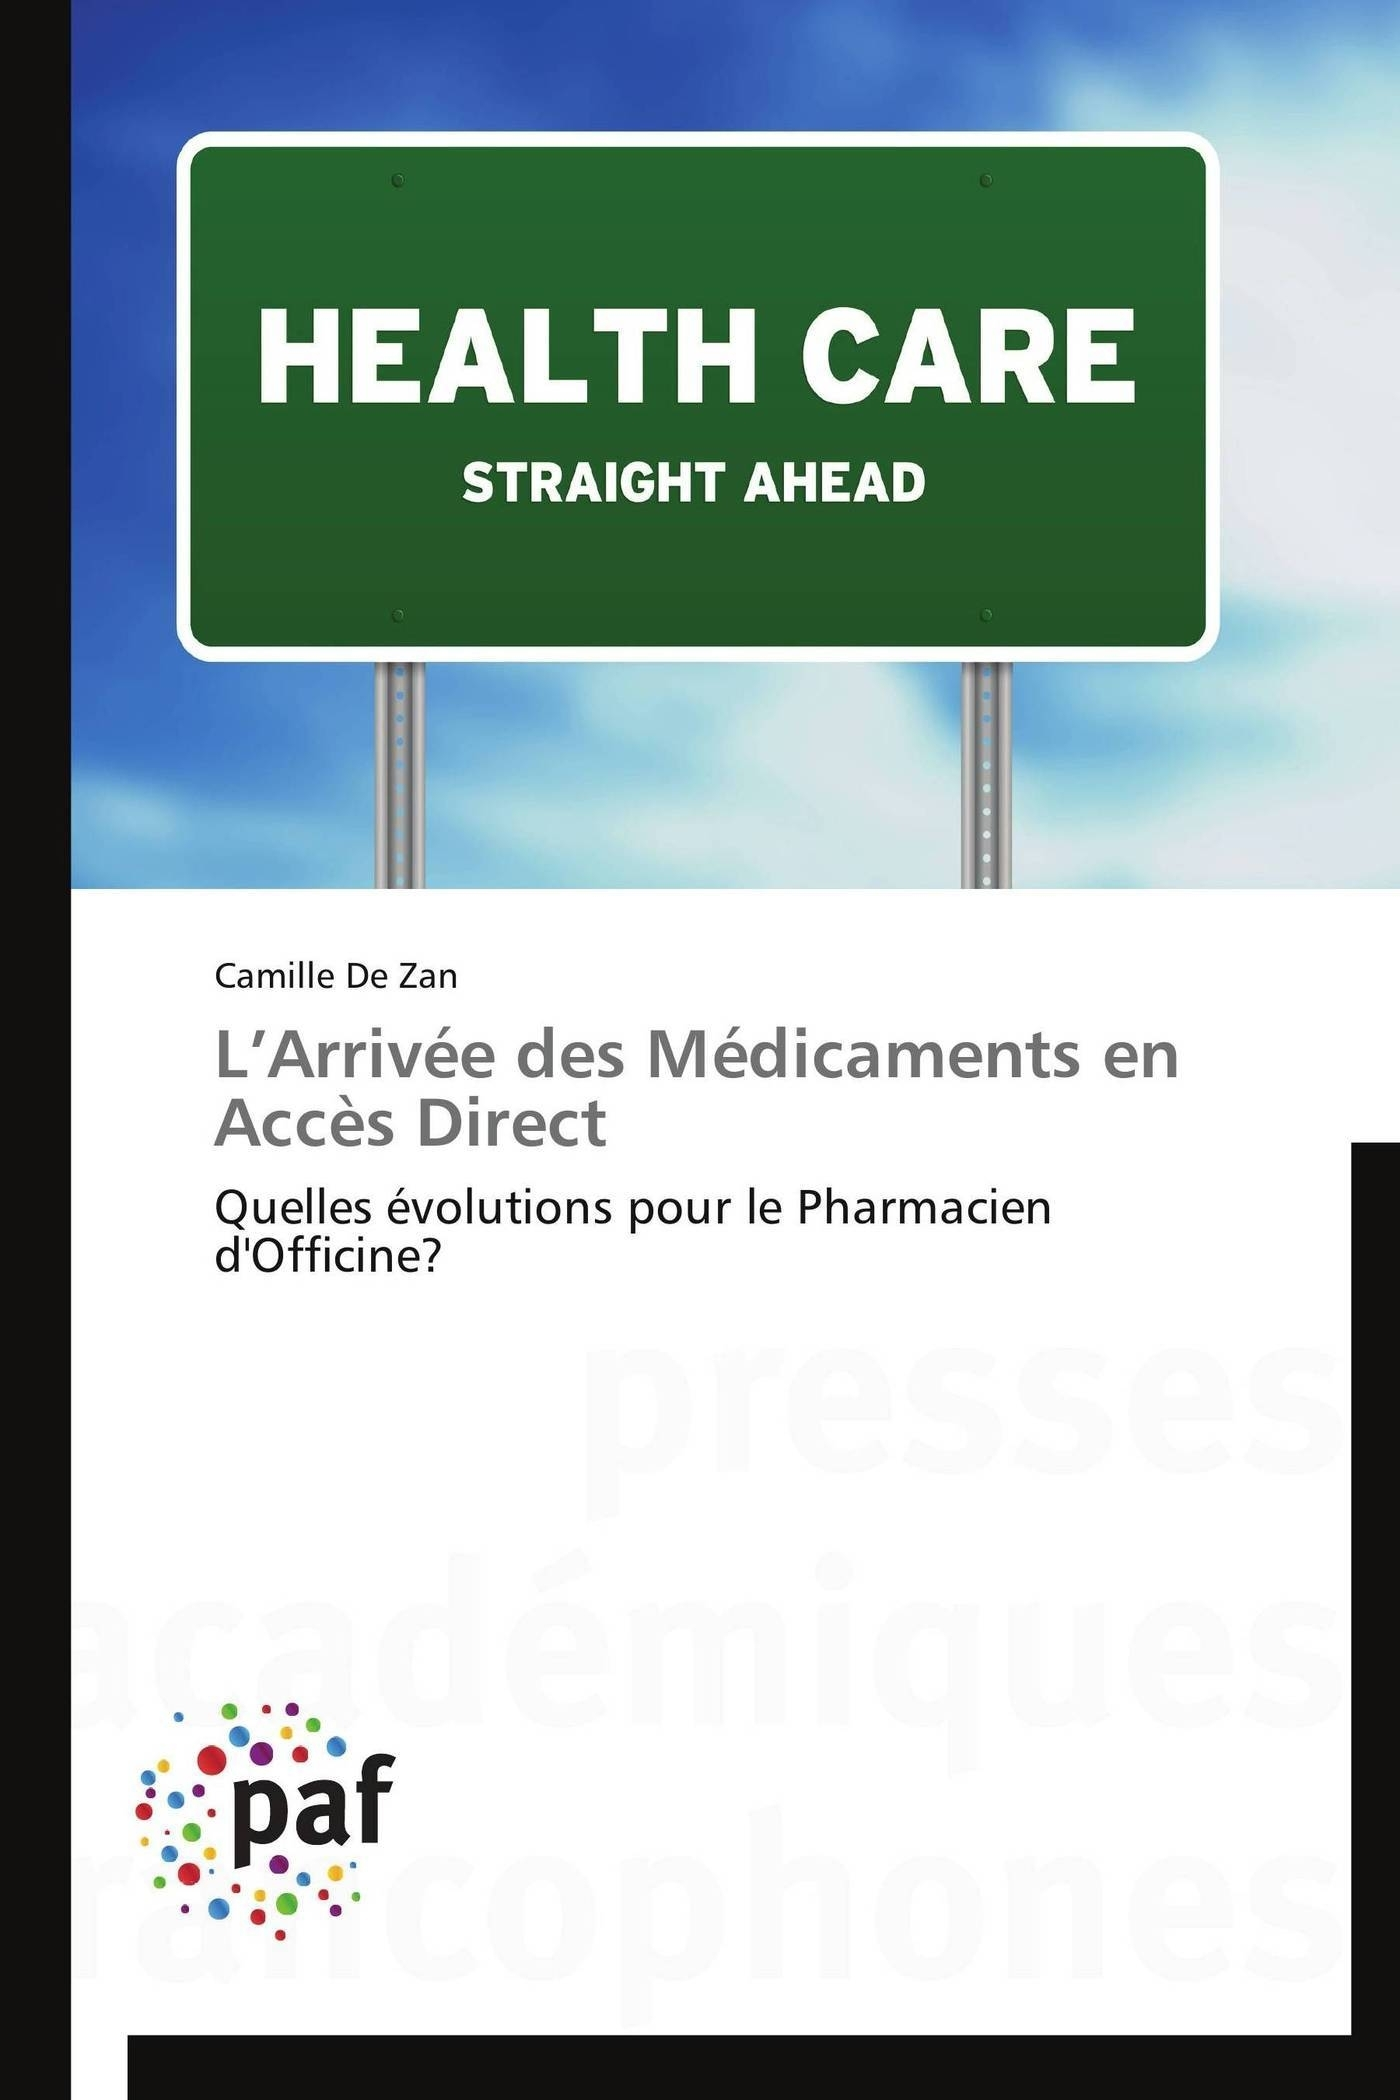 L ARRIVEE DES MEDICAMENTS EN ACCES DIRECT